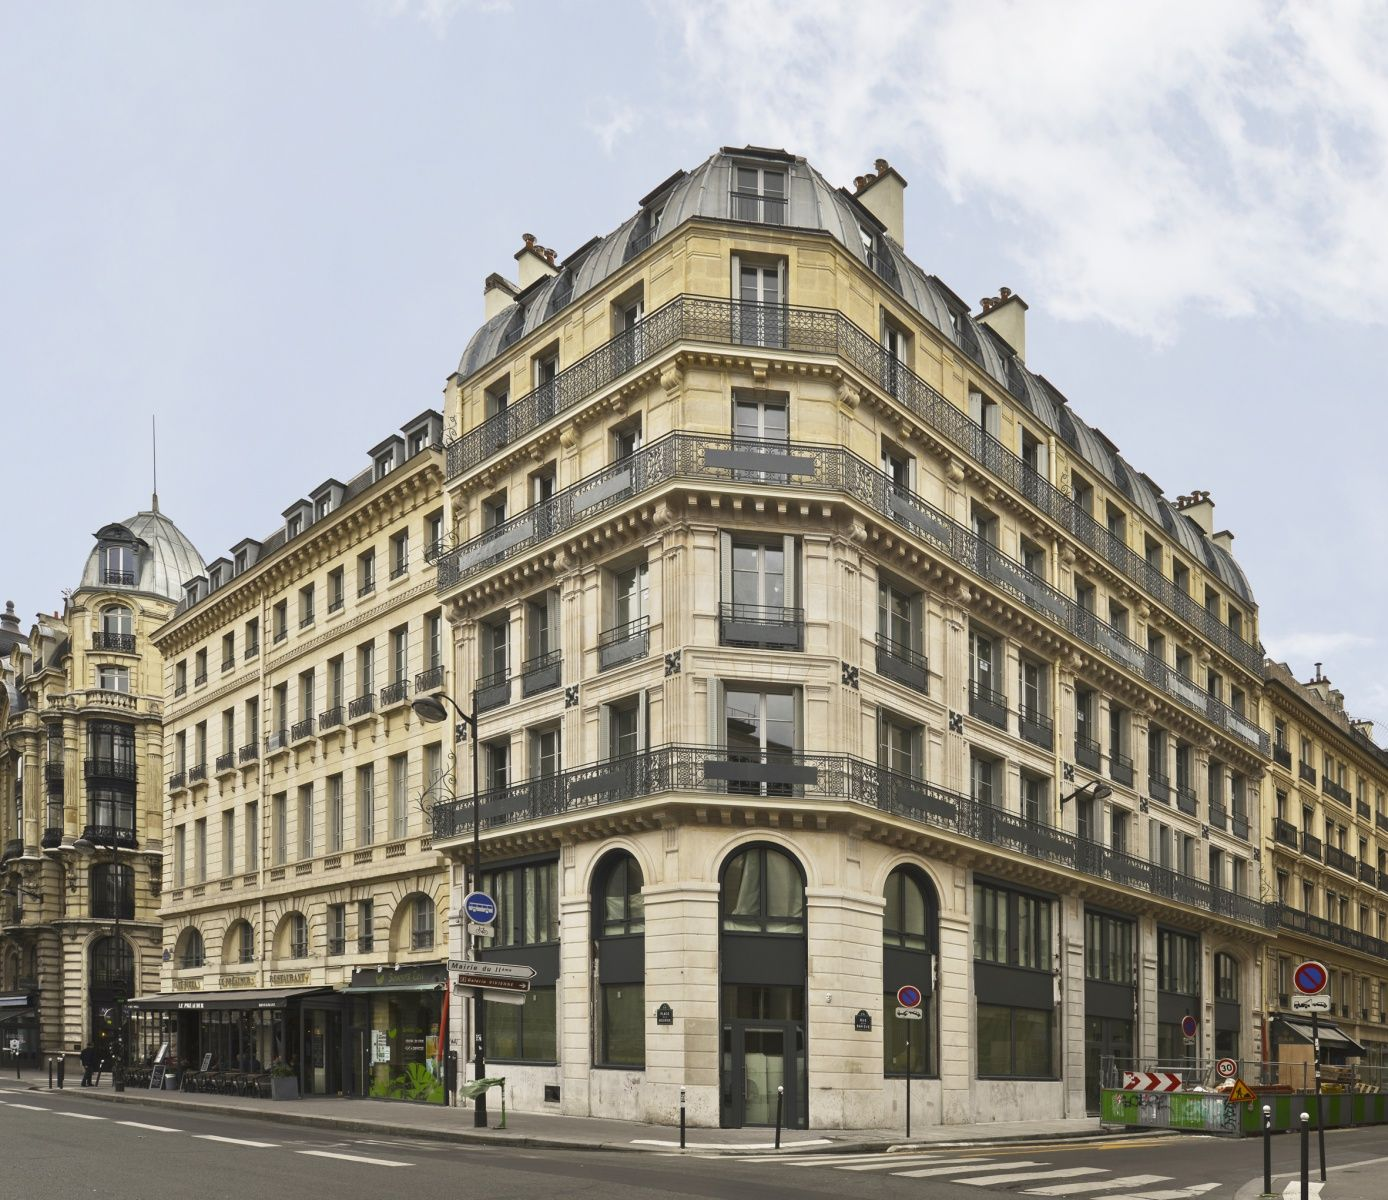 immeuble haussmannien 24 rue de la banque paris 2 paris habitat oph d but 20e s. Black Bedroom Furniture Sets. Home Design Ideas